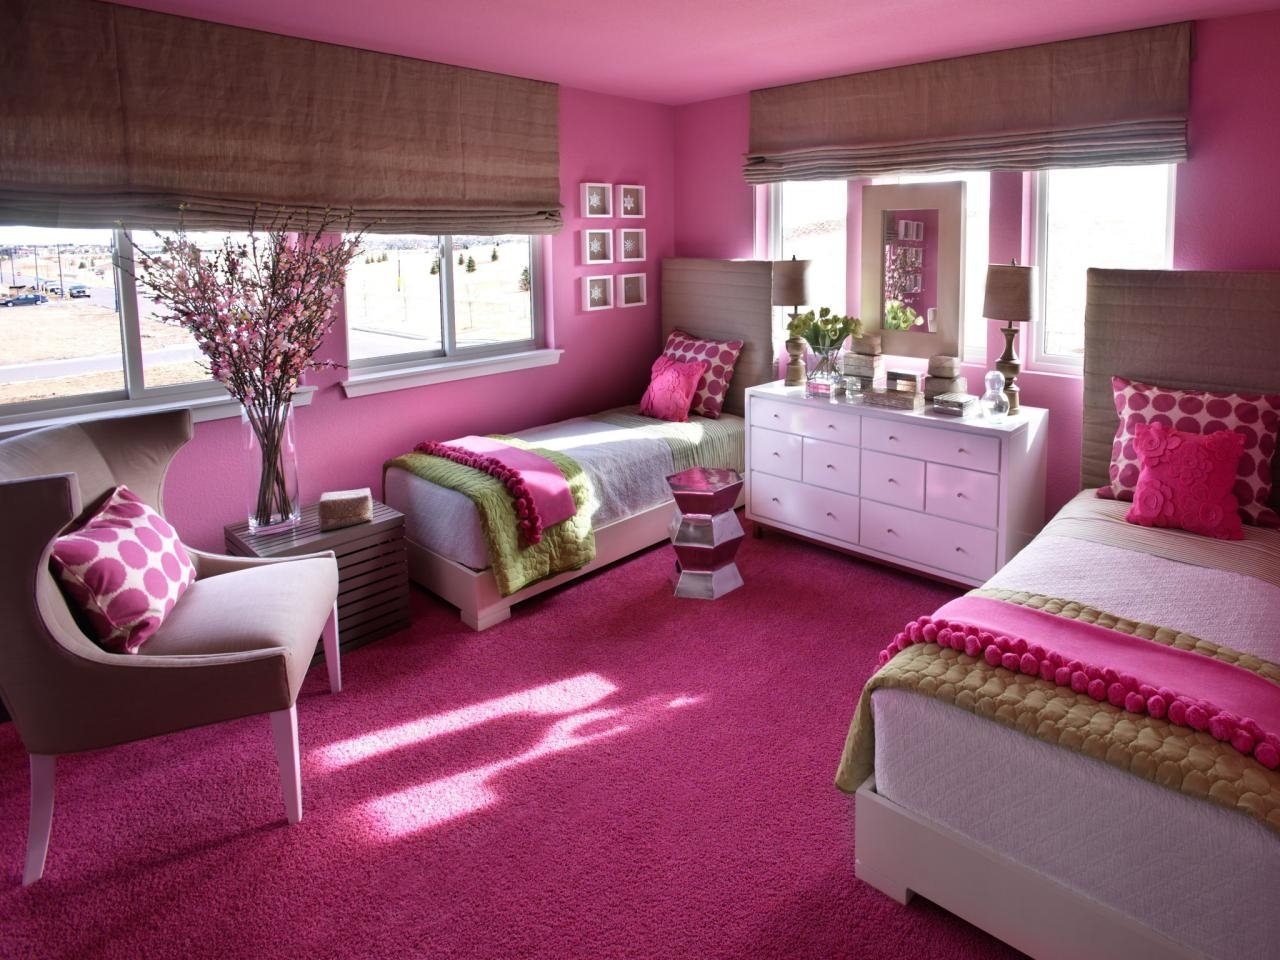 10 Cute Ideas For Painting A Room %name 2020